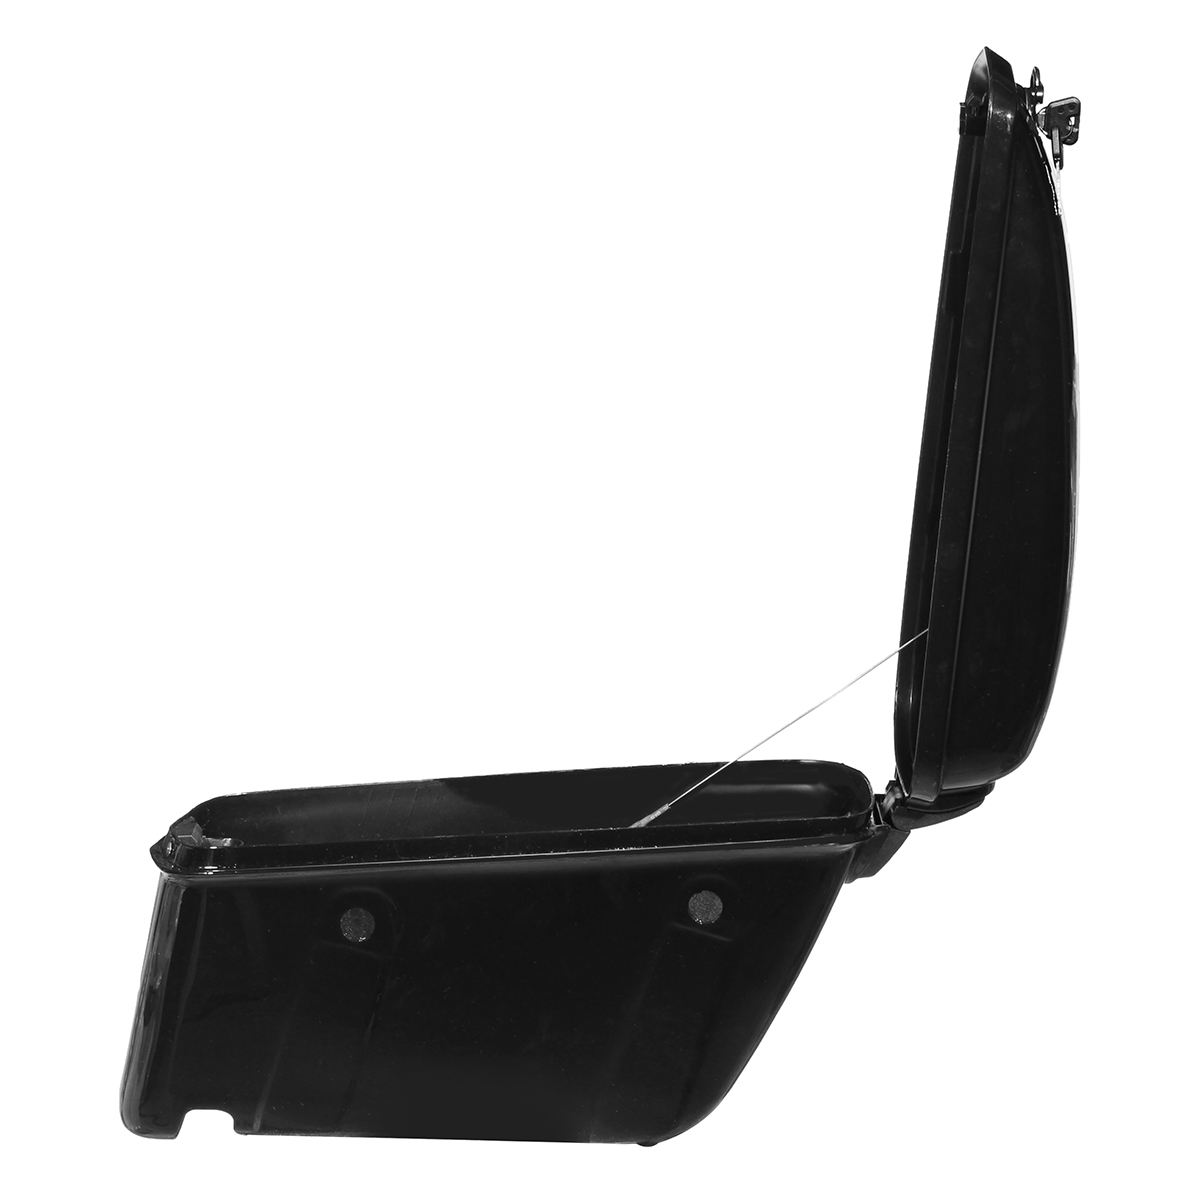 22L Black Motorcycle Side Hard Saddle Bags Saddlebags Trunk With Bracket For Honda/Harley Touring